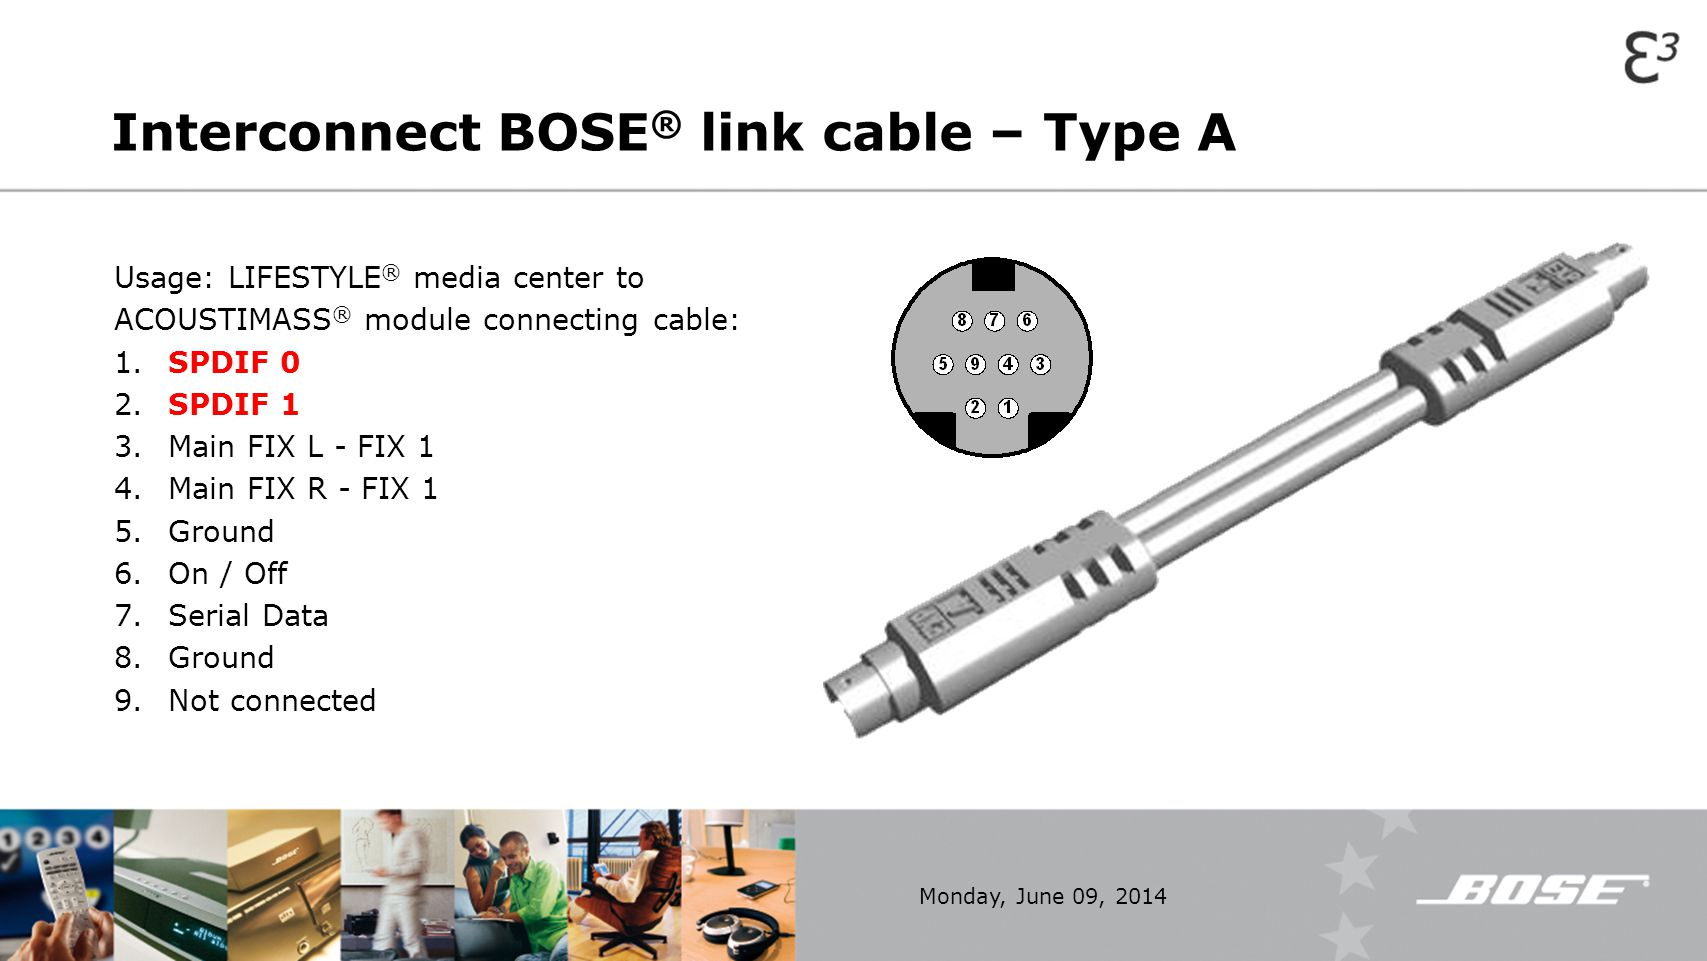 Bose Link Music Throughout Your Home Ppt Video Online Download Lifestyle 18 Wiring Diagram Interconnect Cable Type A